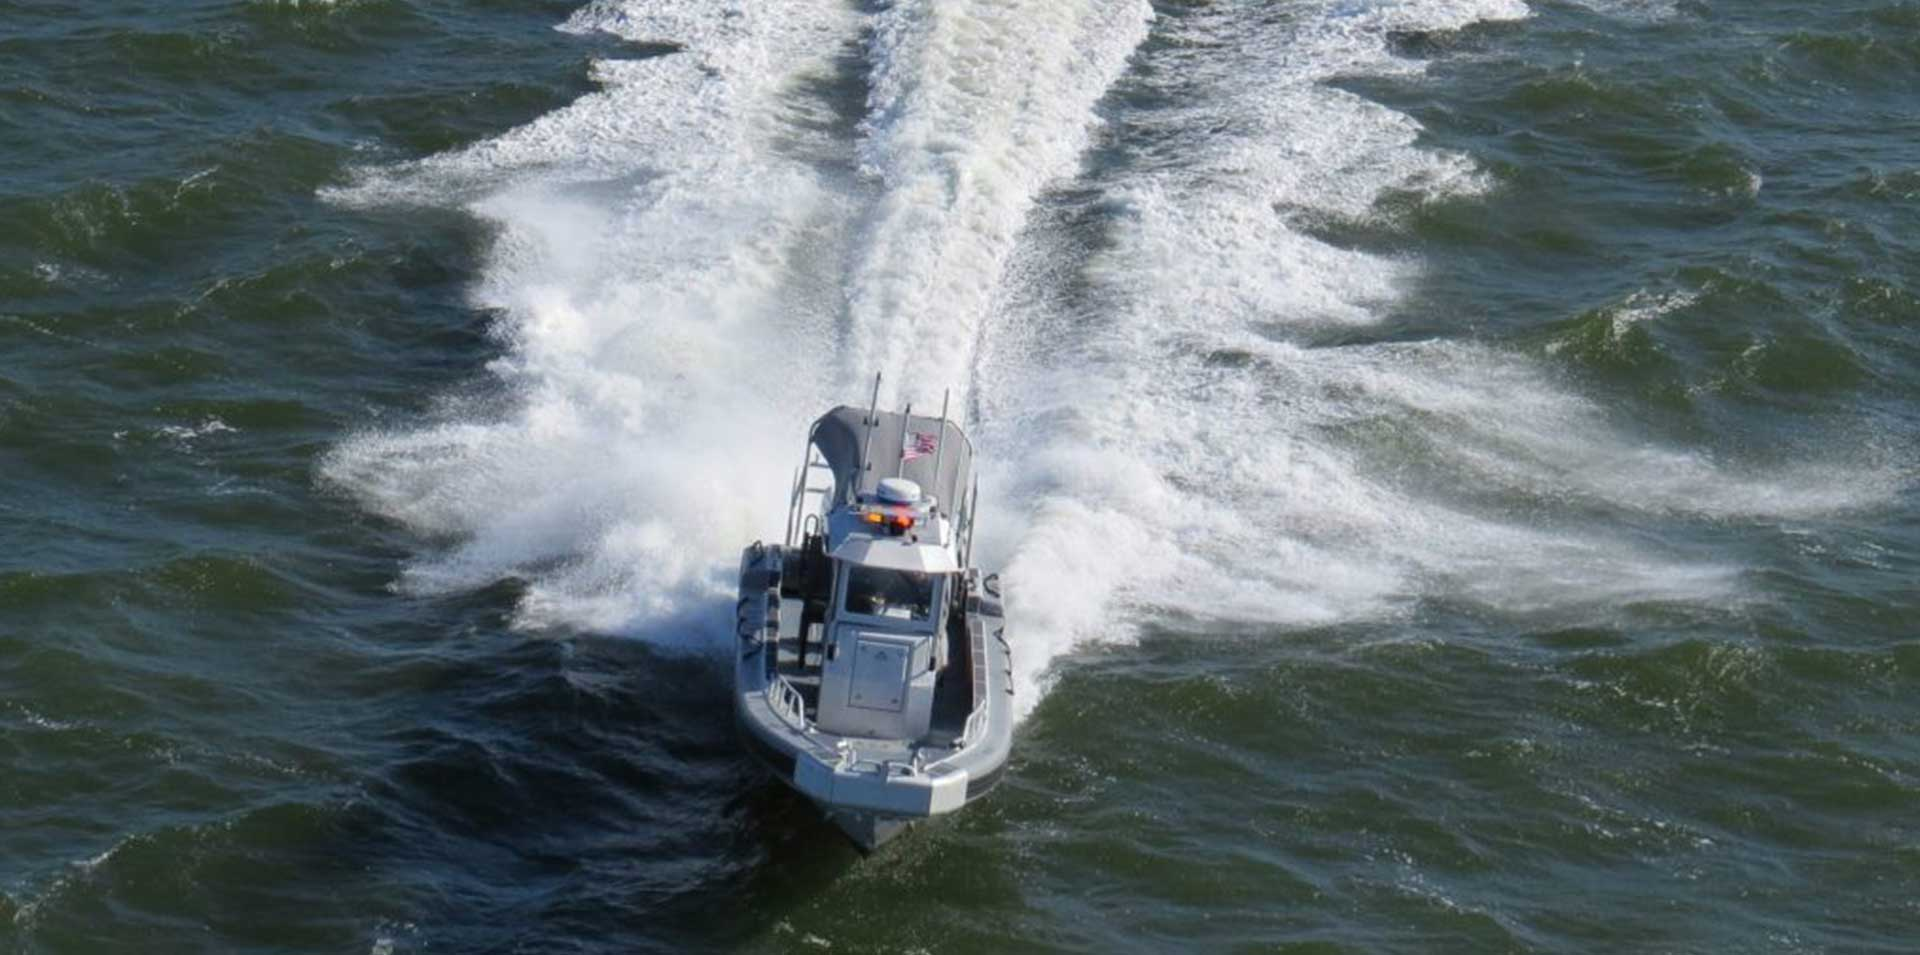 Silve Ships Ambar Series AM 1100 police boat hitting ocean waves